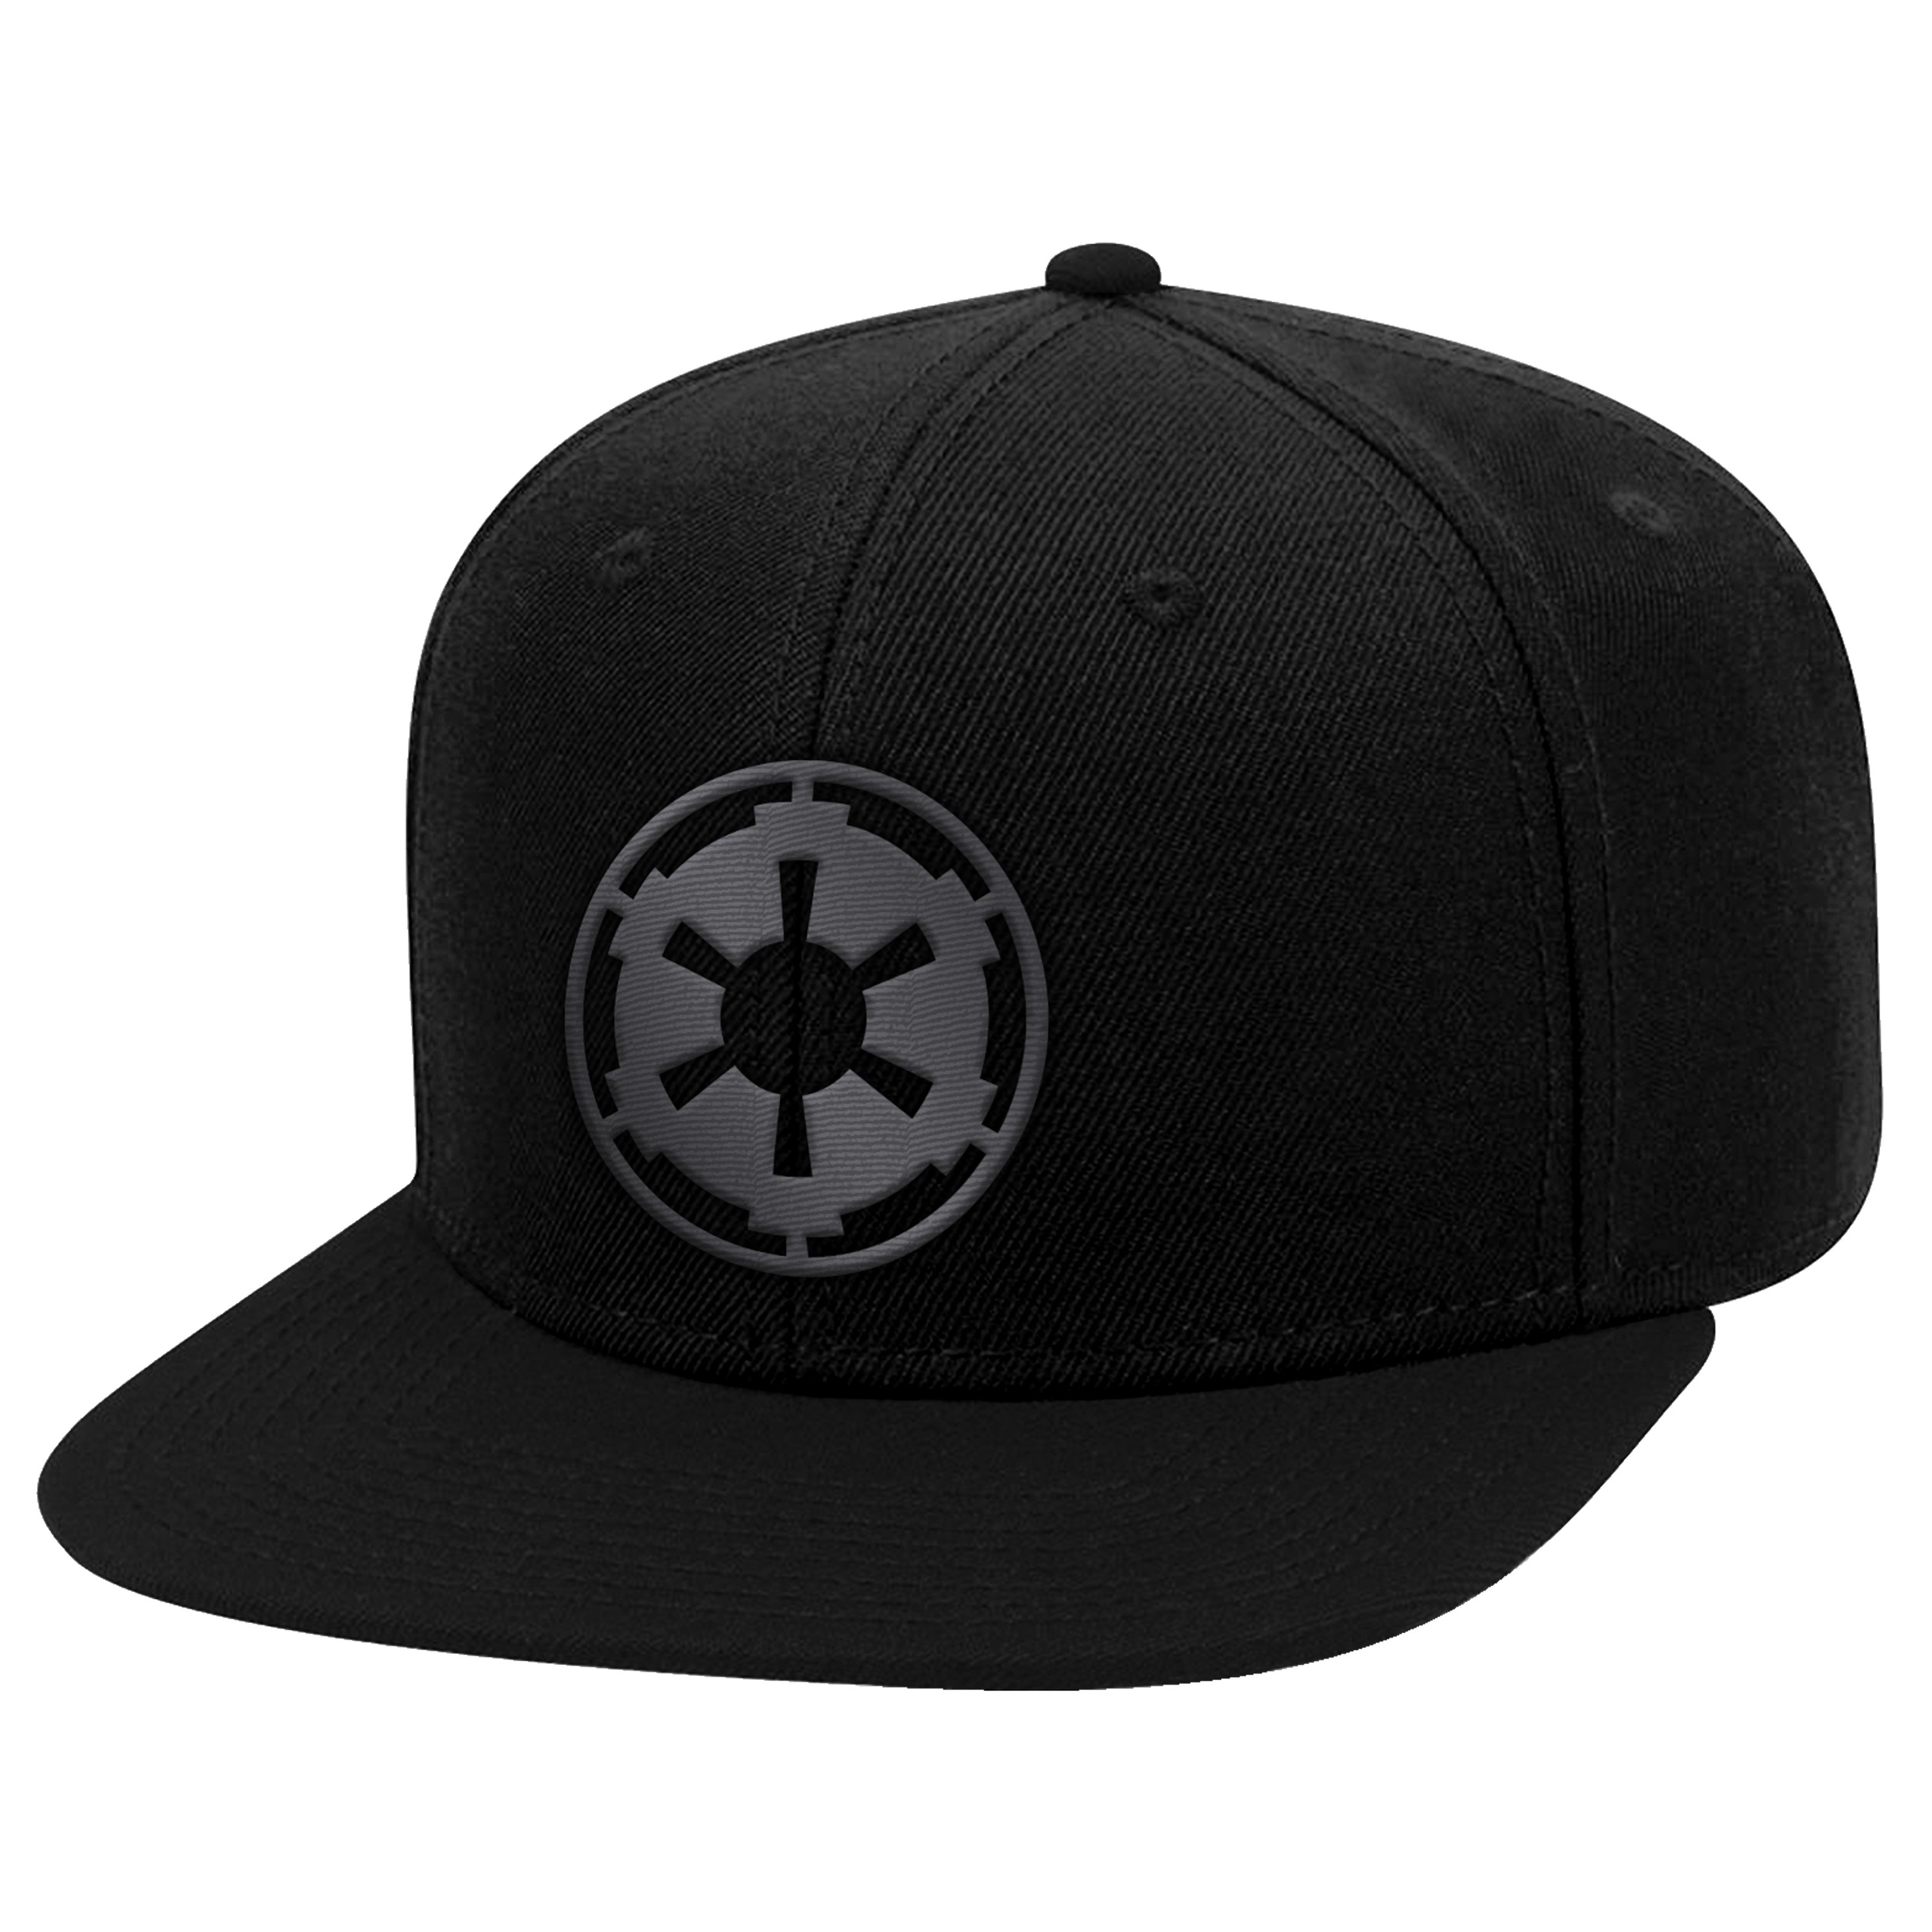 Star Wars Hat with a Jedi Fallen Order Empire Blacked Out Design, Image 1